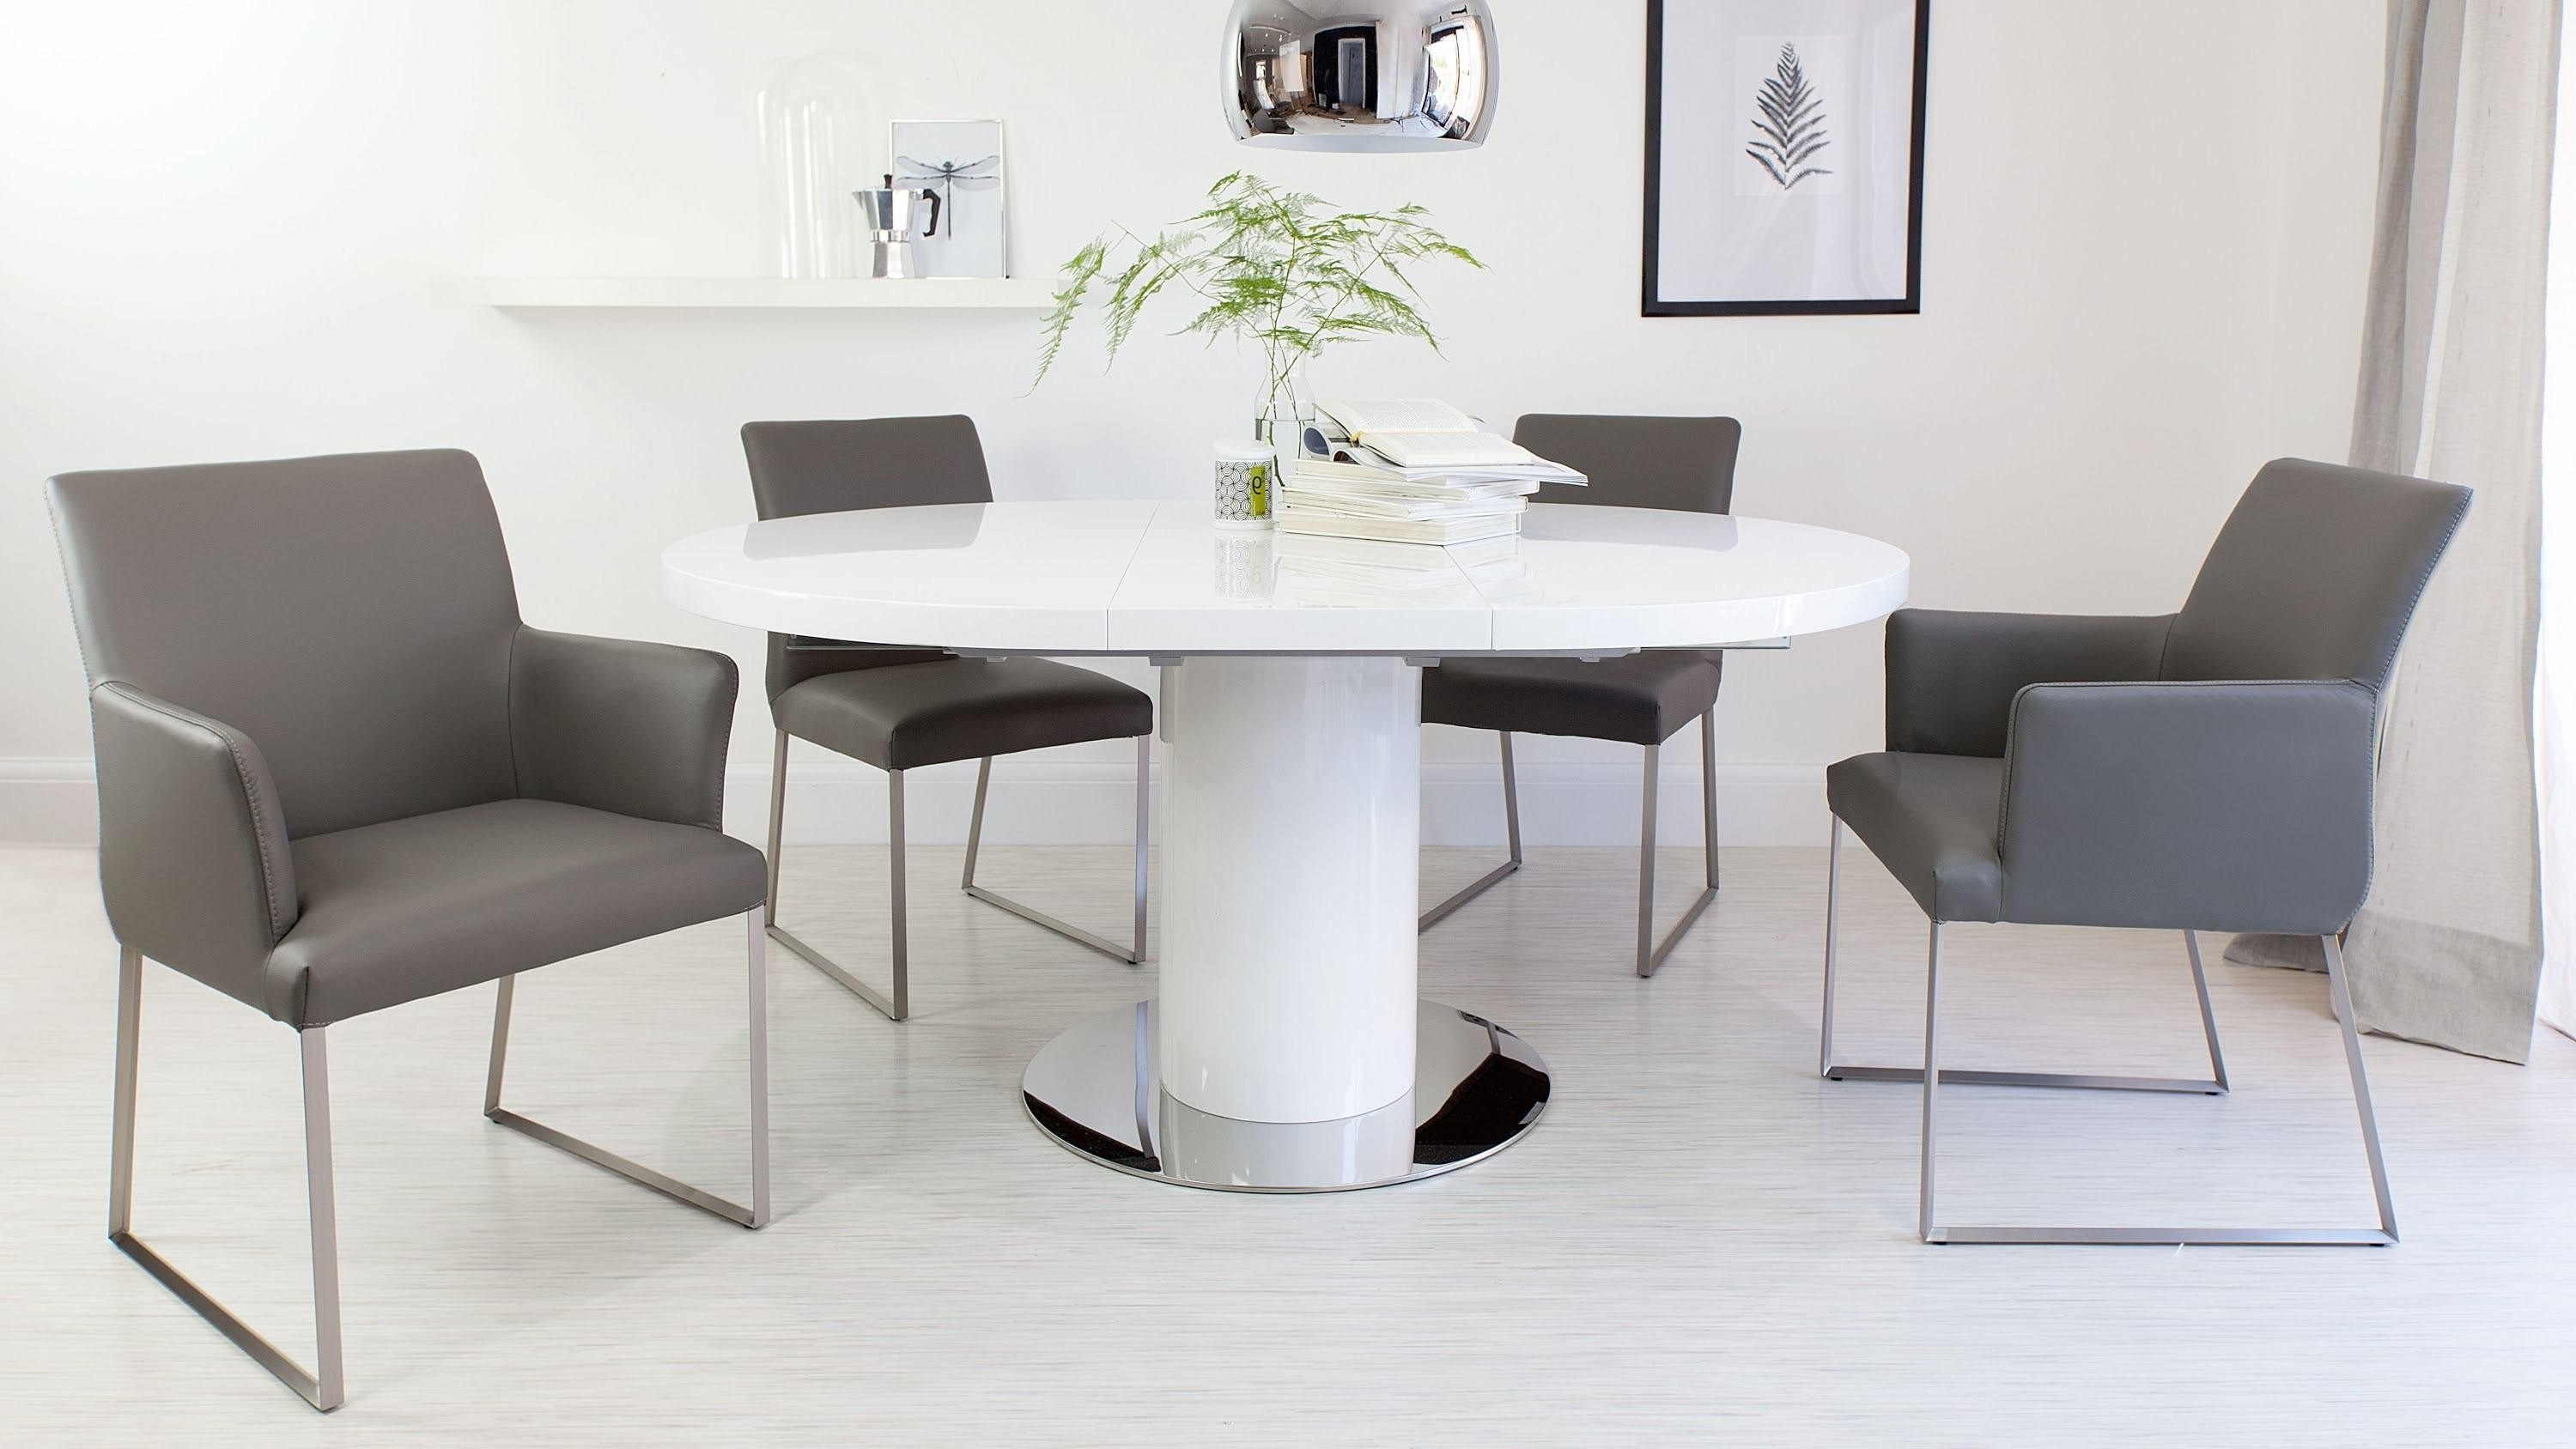 2017 White High Gloss Extending Dining Table Luxury 8 Seater Dining Table Throughout Extendable Round Dining Tables Sets (View 1 of 25)